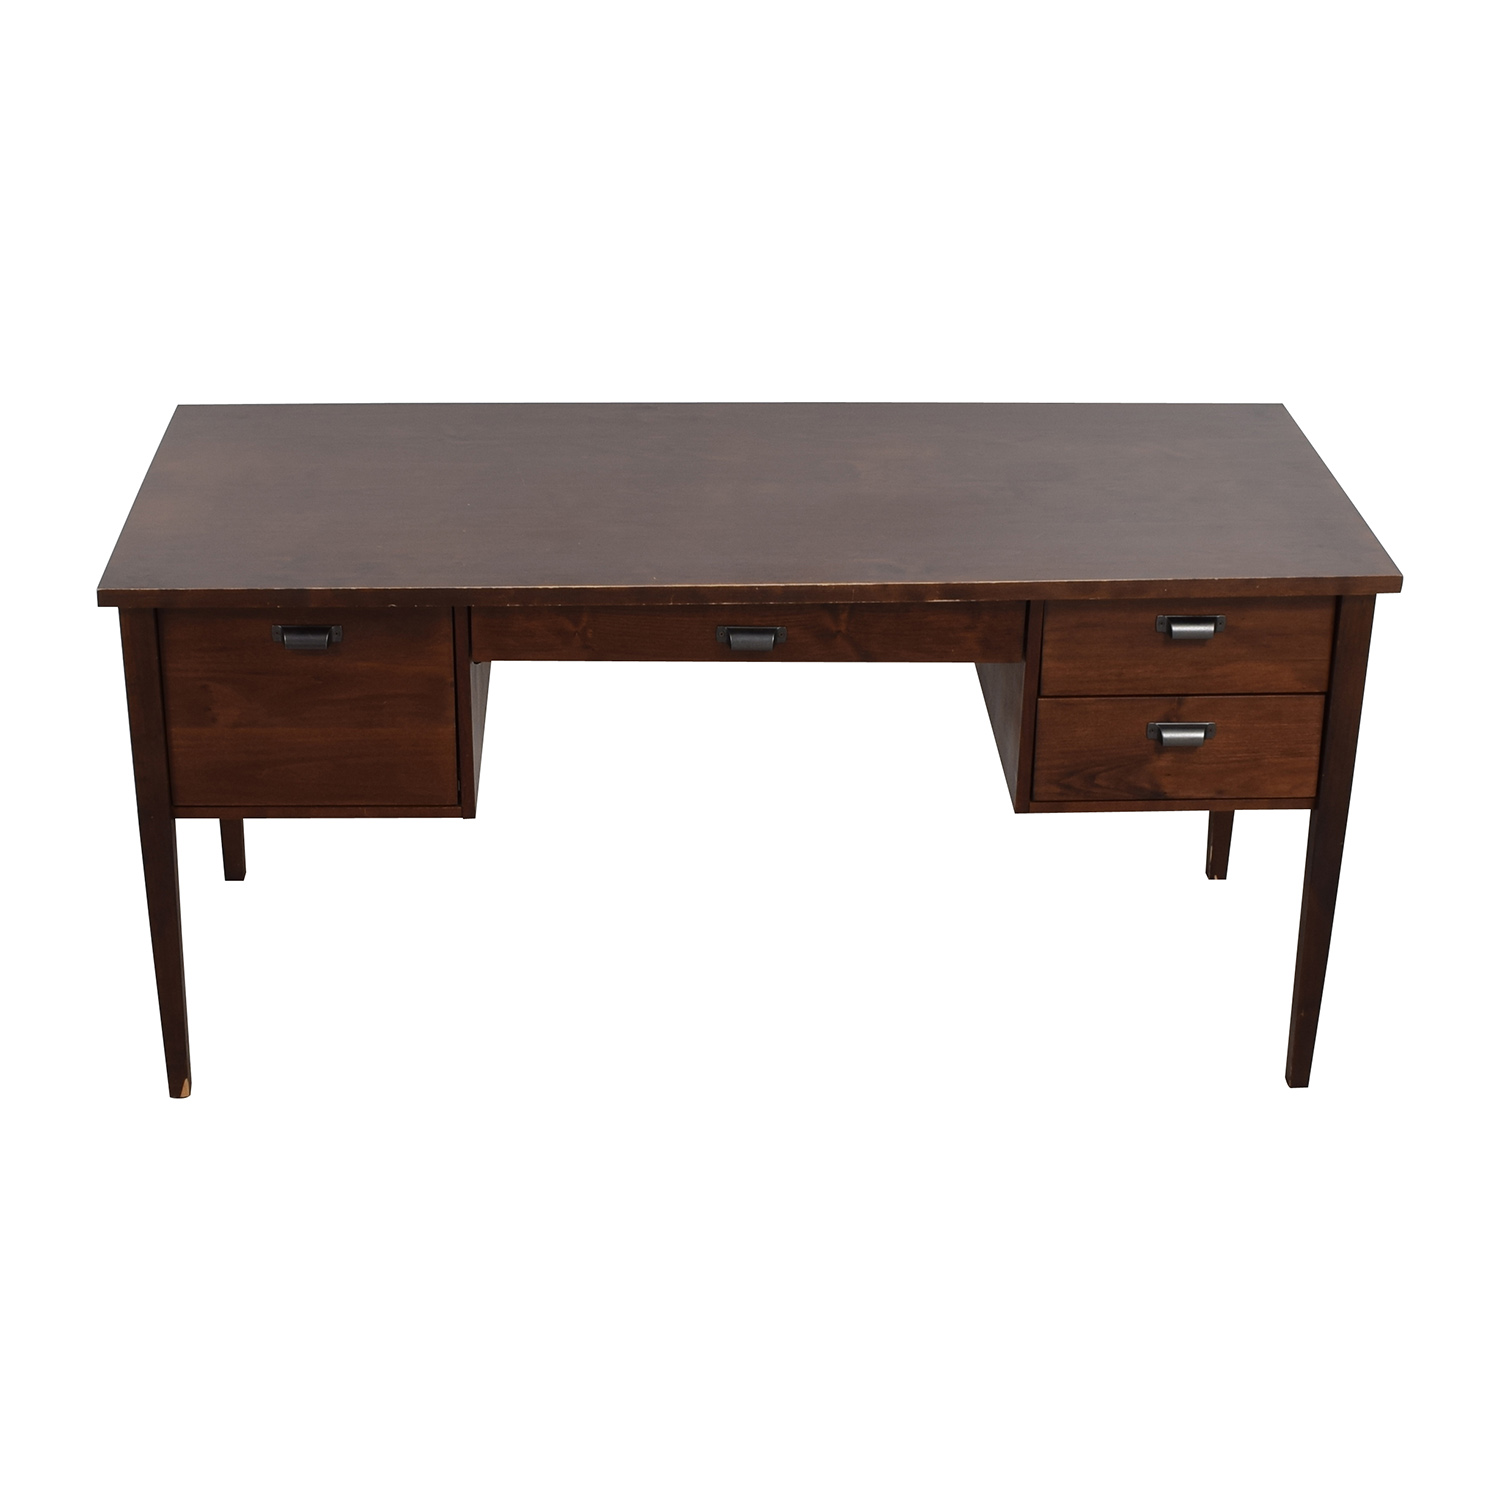 Crate & Barrel Crate & Barrel Hardwood Desk used